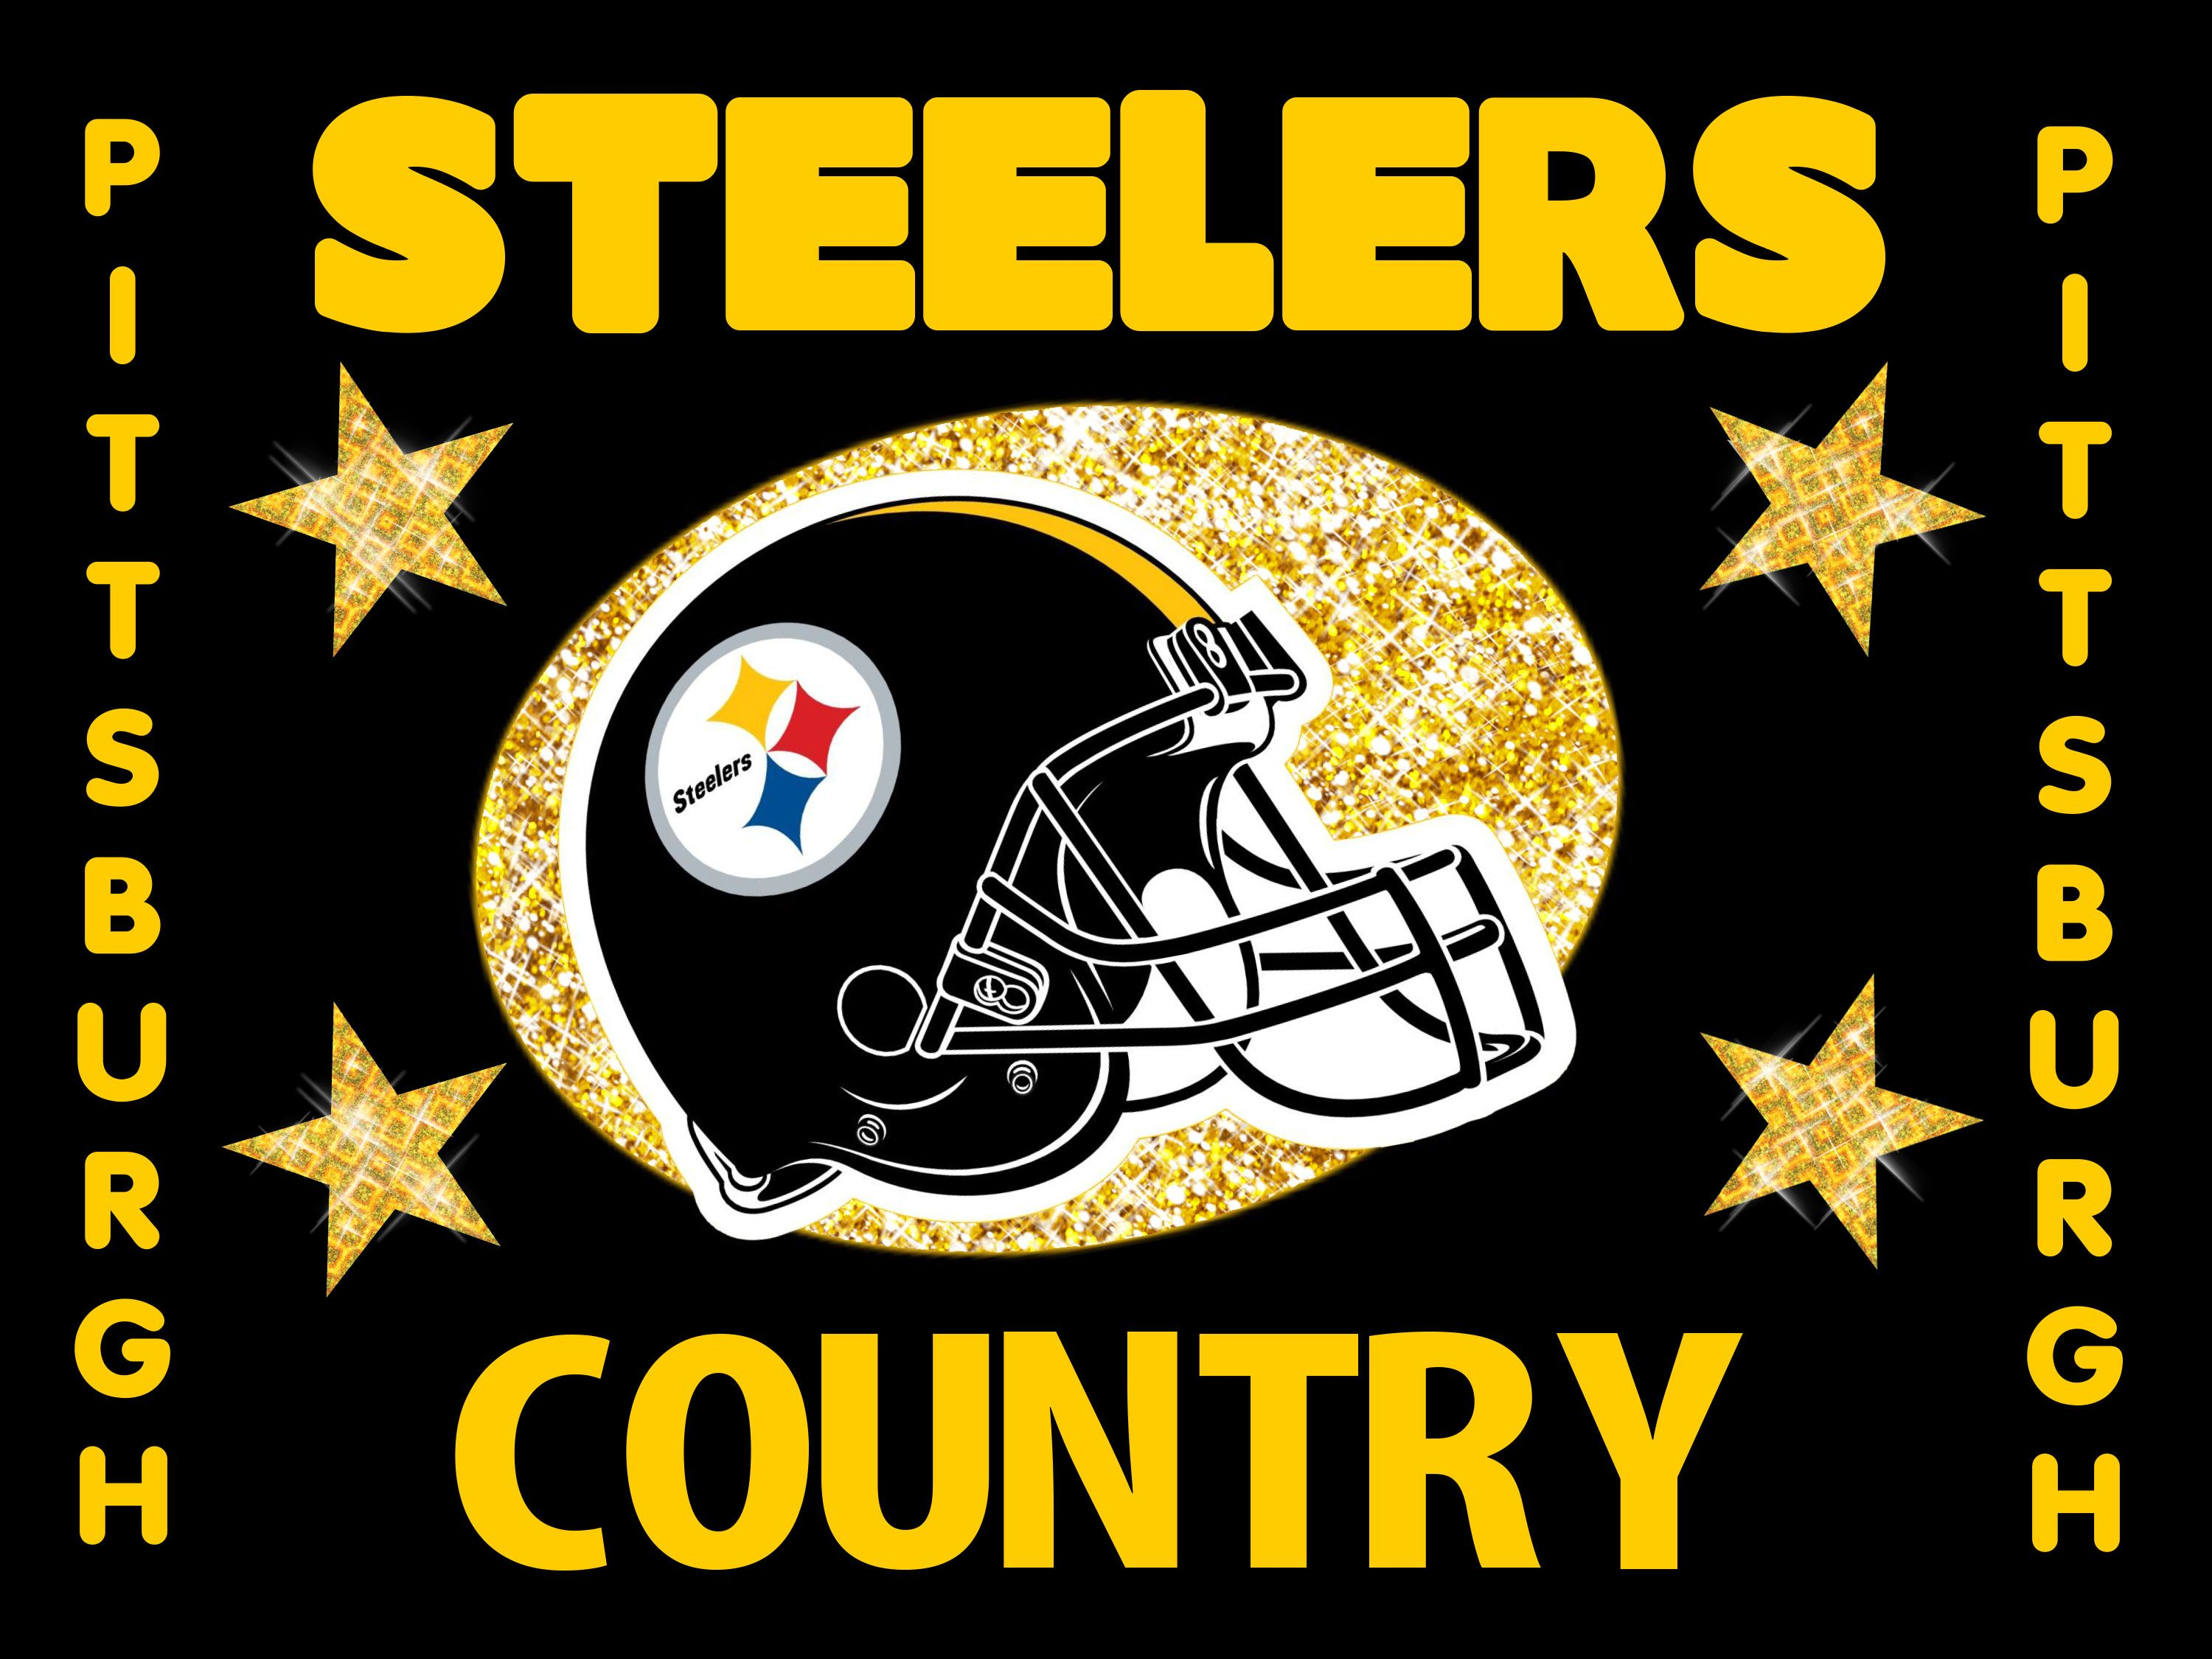 black and gold steelers country  pittsburgh steelers pics of steelers logo transparencies pittsburgh steelers logo